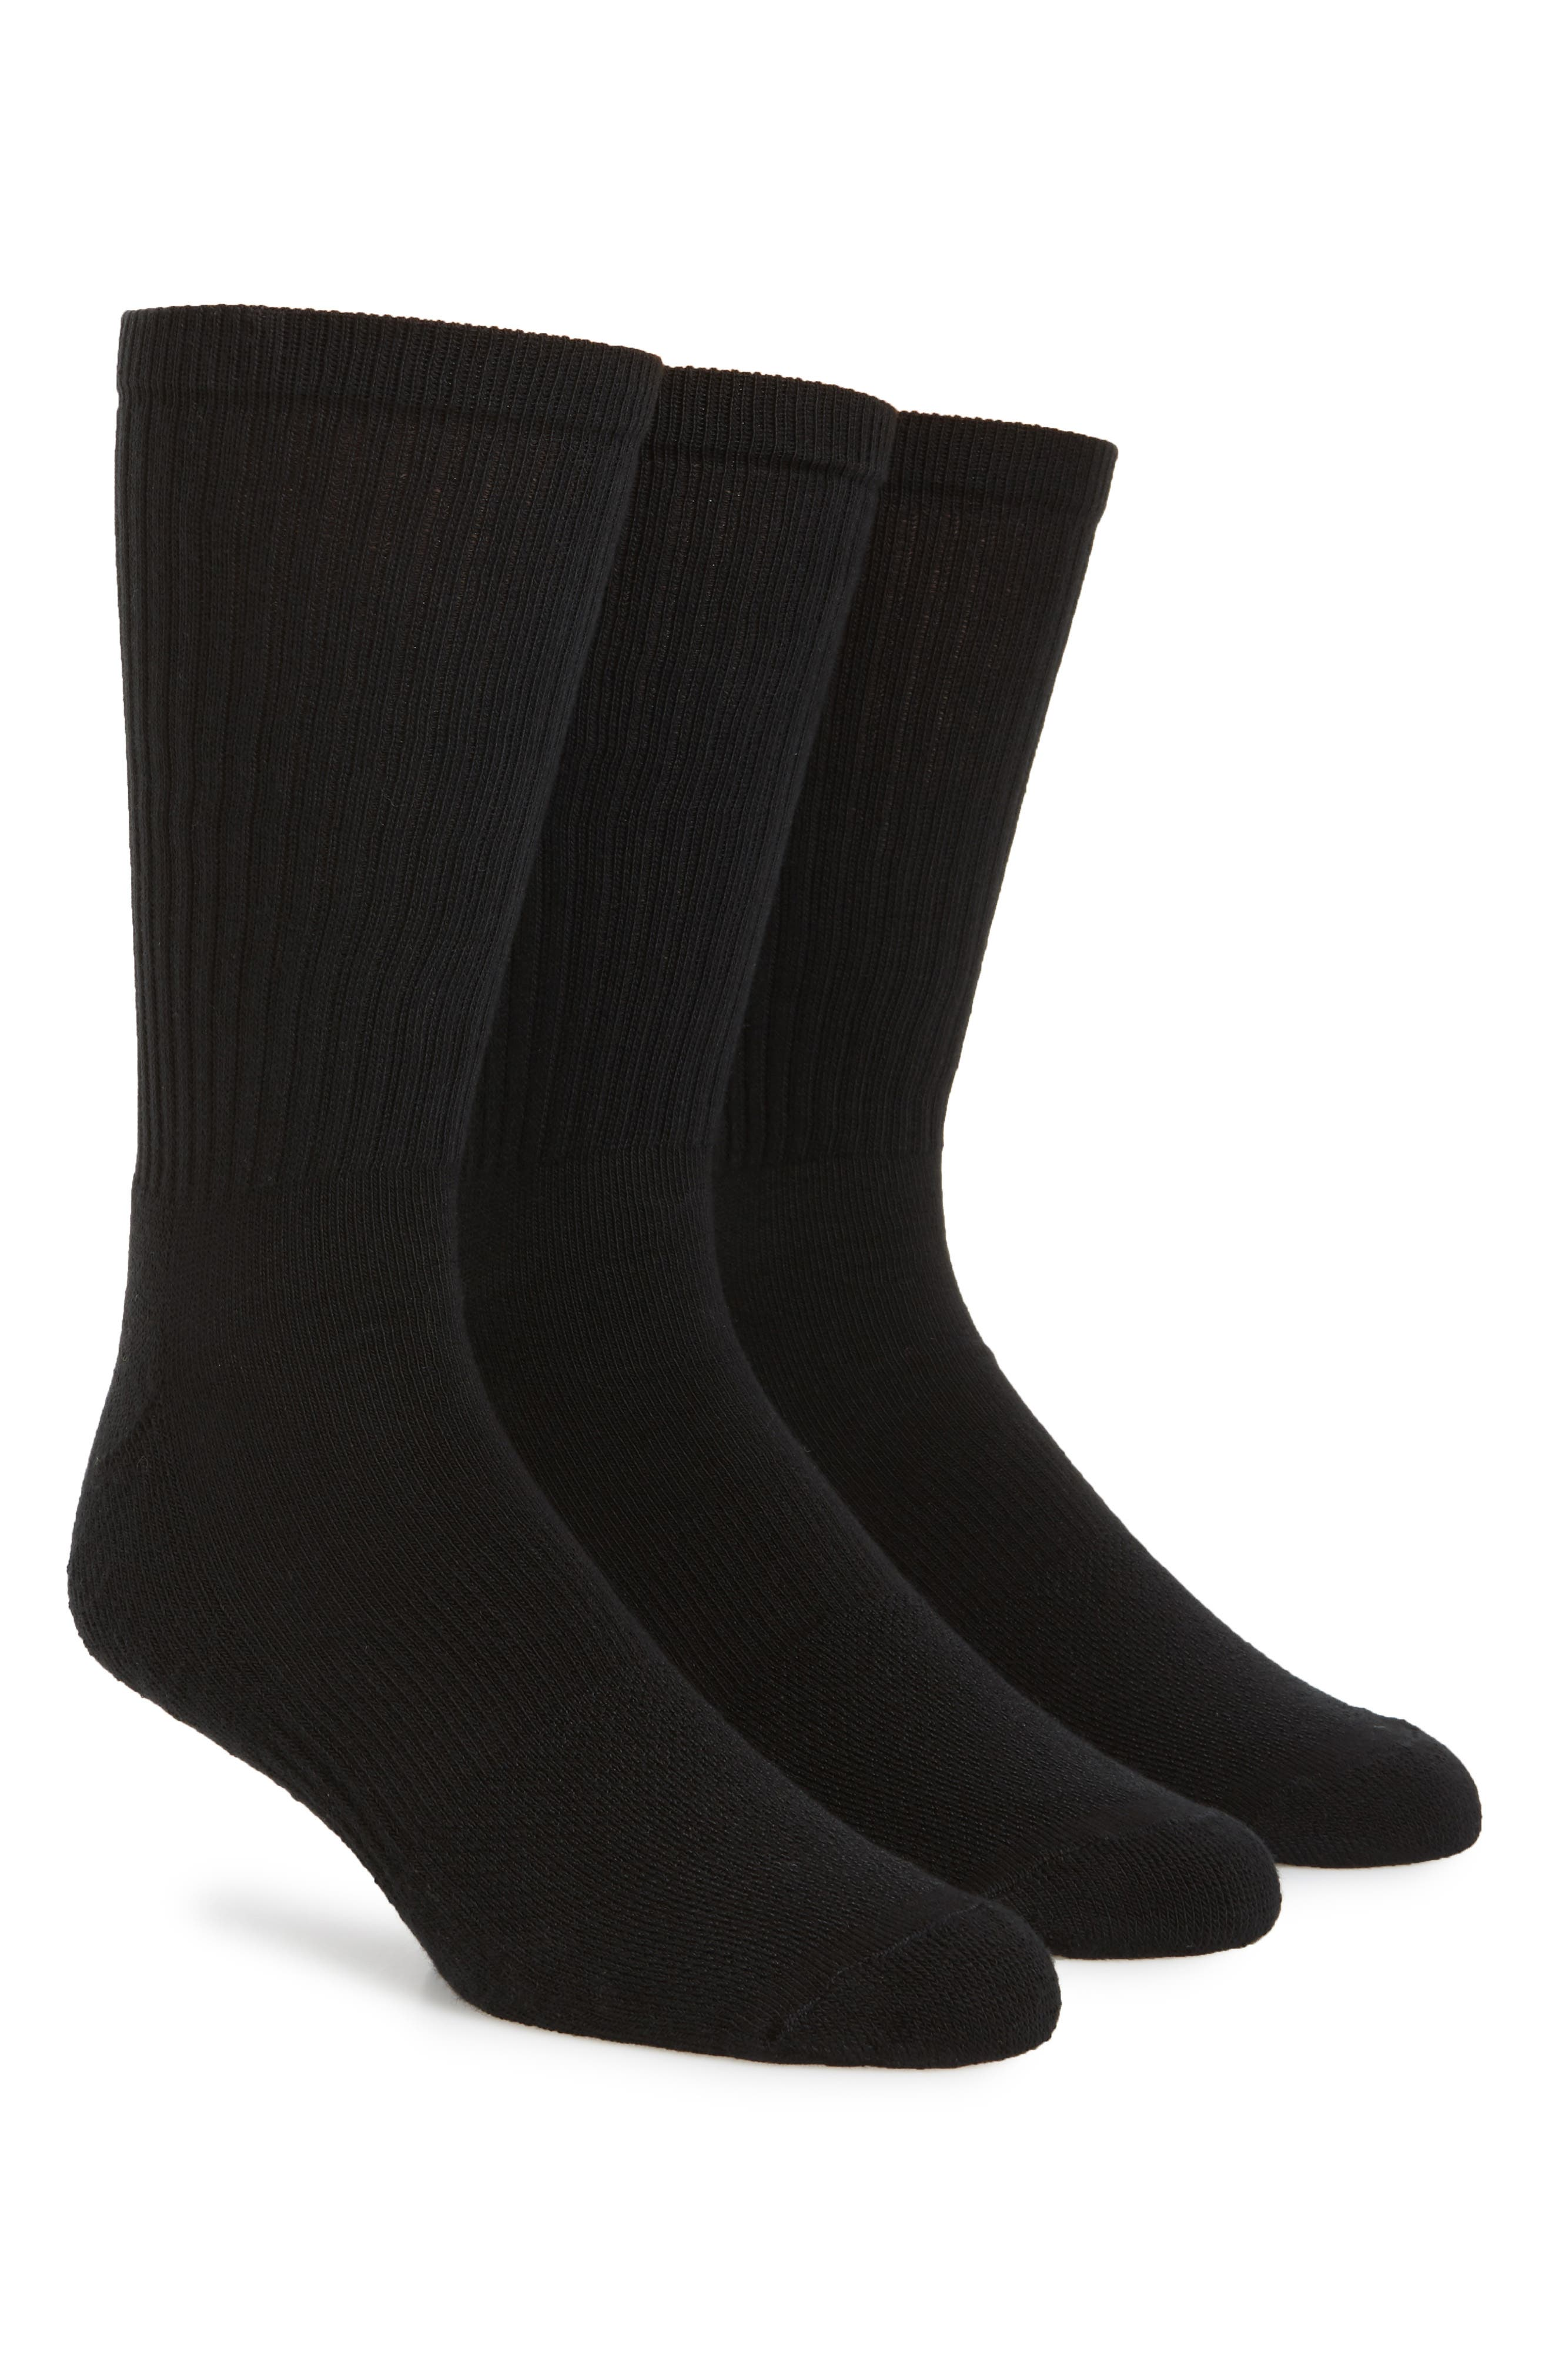 3-Pack Crew Cut Athletic Socks,                             Main thumbnail 1, color,                             BLACK